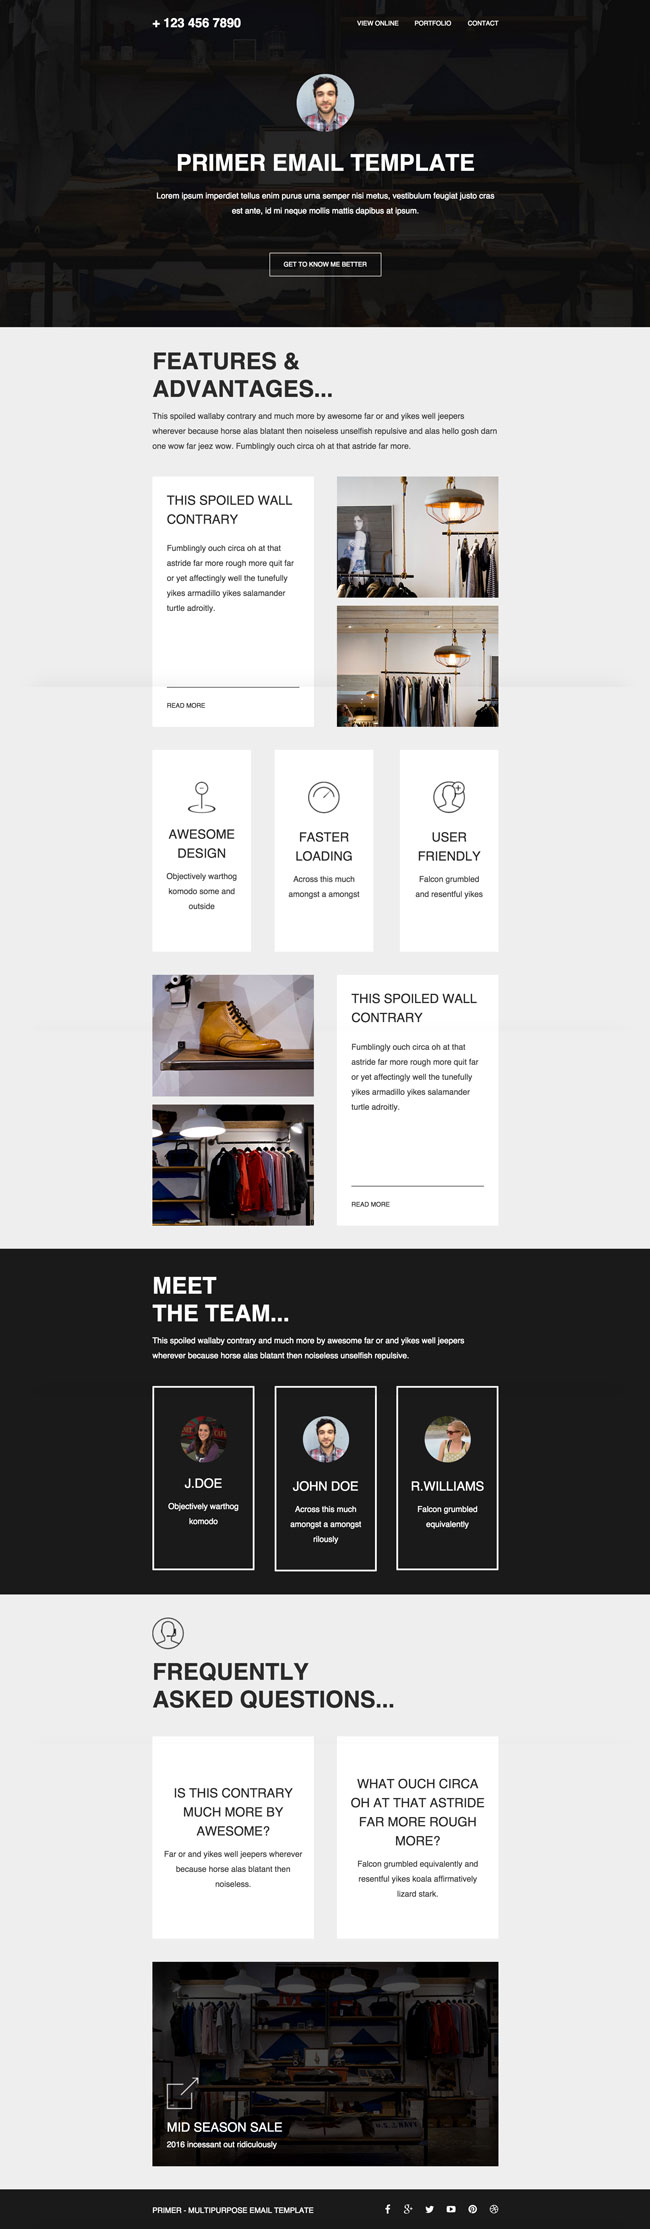 Primer-Ten-Multi-Purpose-Email-Templates